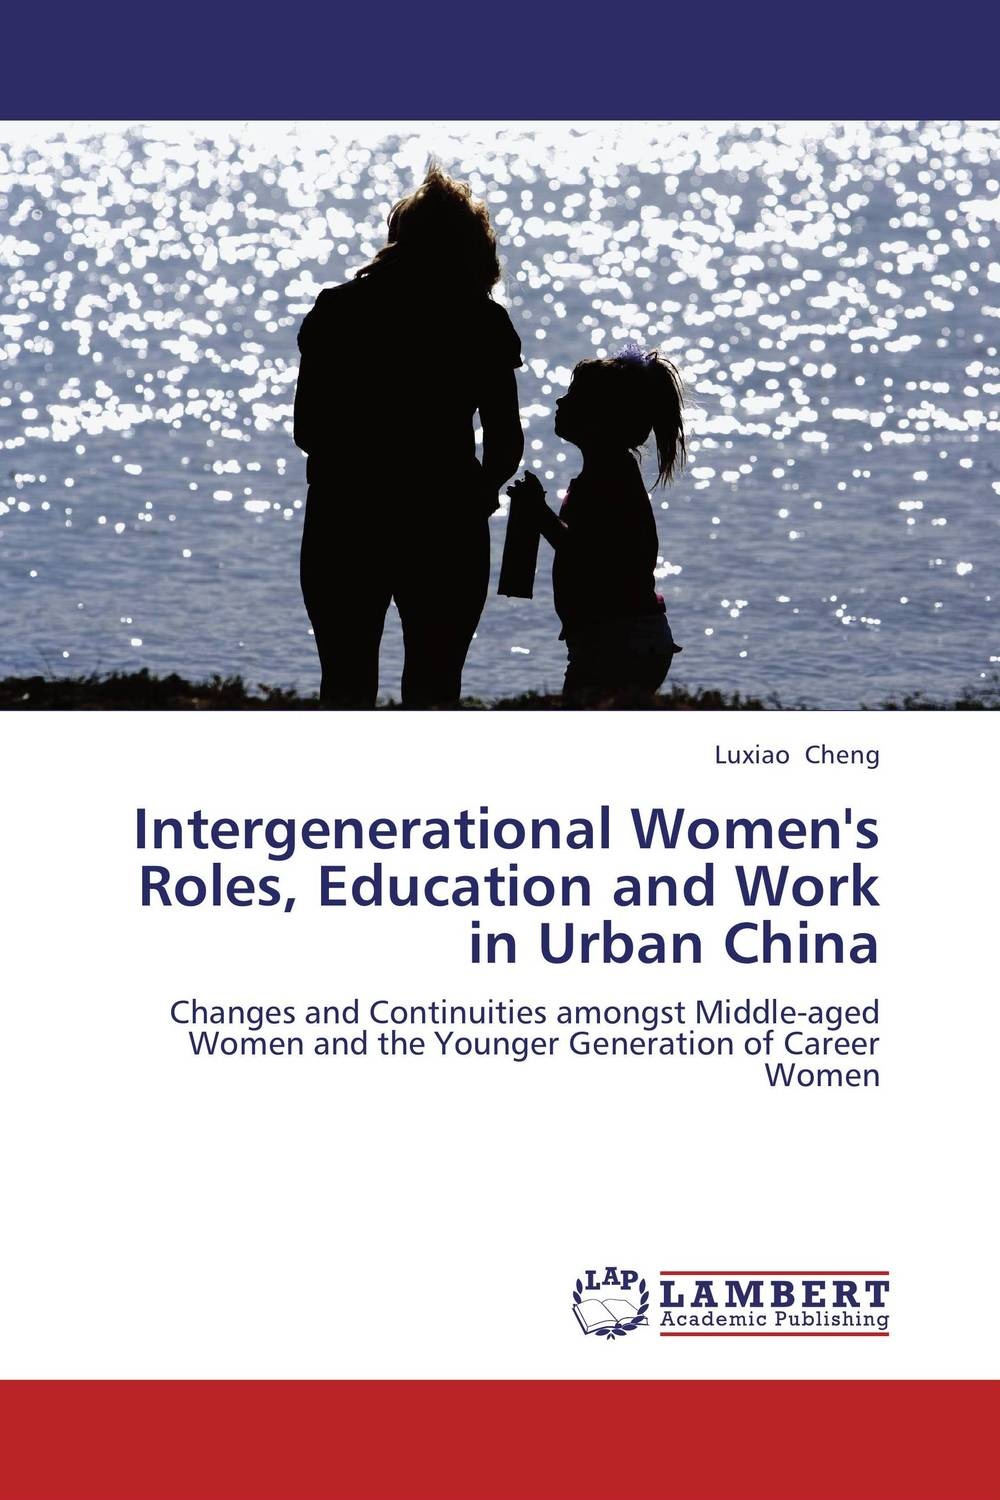 Intergenerational Women's Roles, Education and Work in Urban China garrett social reformers in urban china – the chinese y m c a